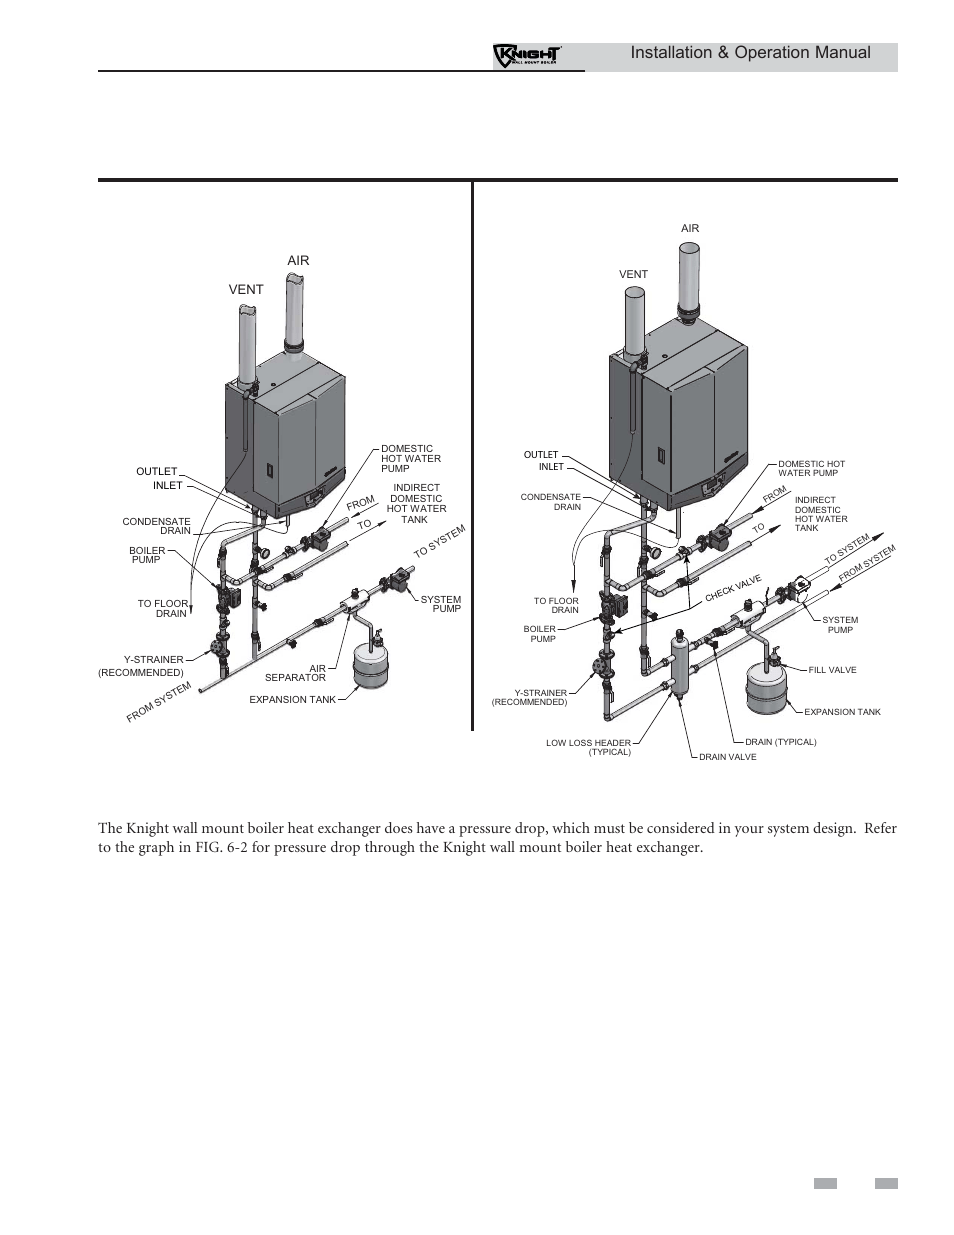 hight resolution of hydronic piping near boiler piping connections installation operation manual lochinvar knight wh 55 399 user manual page 35 80